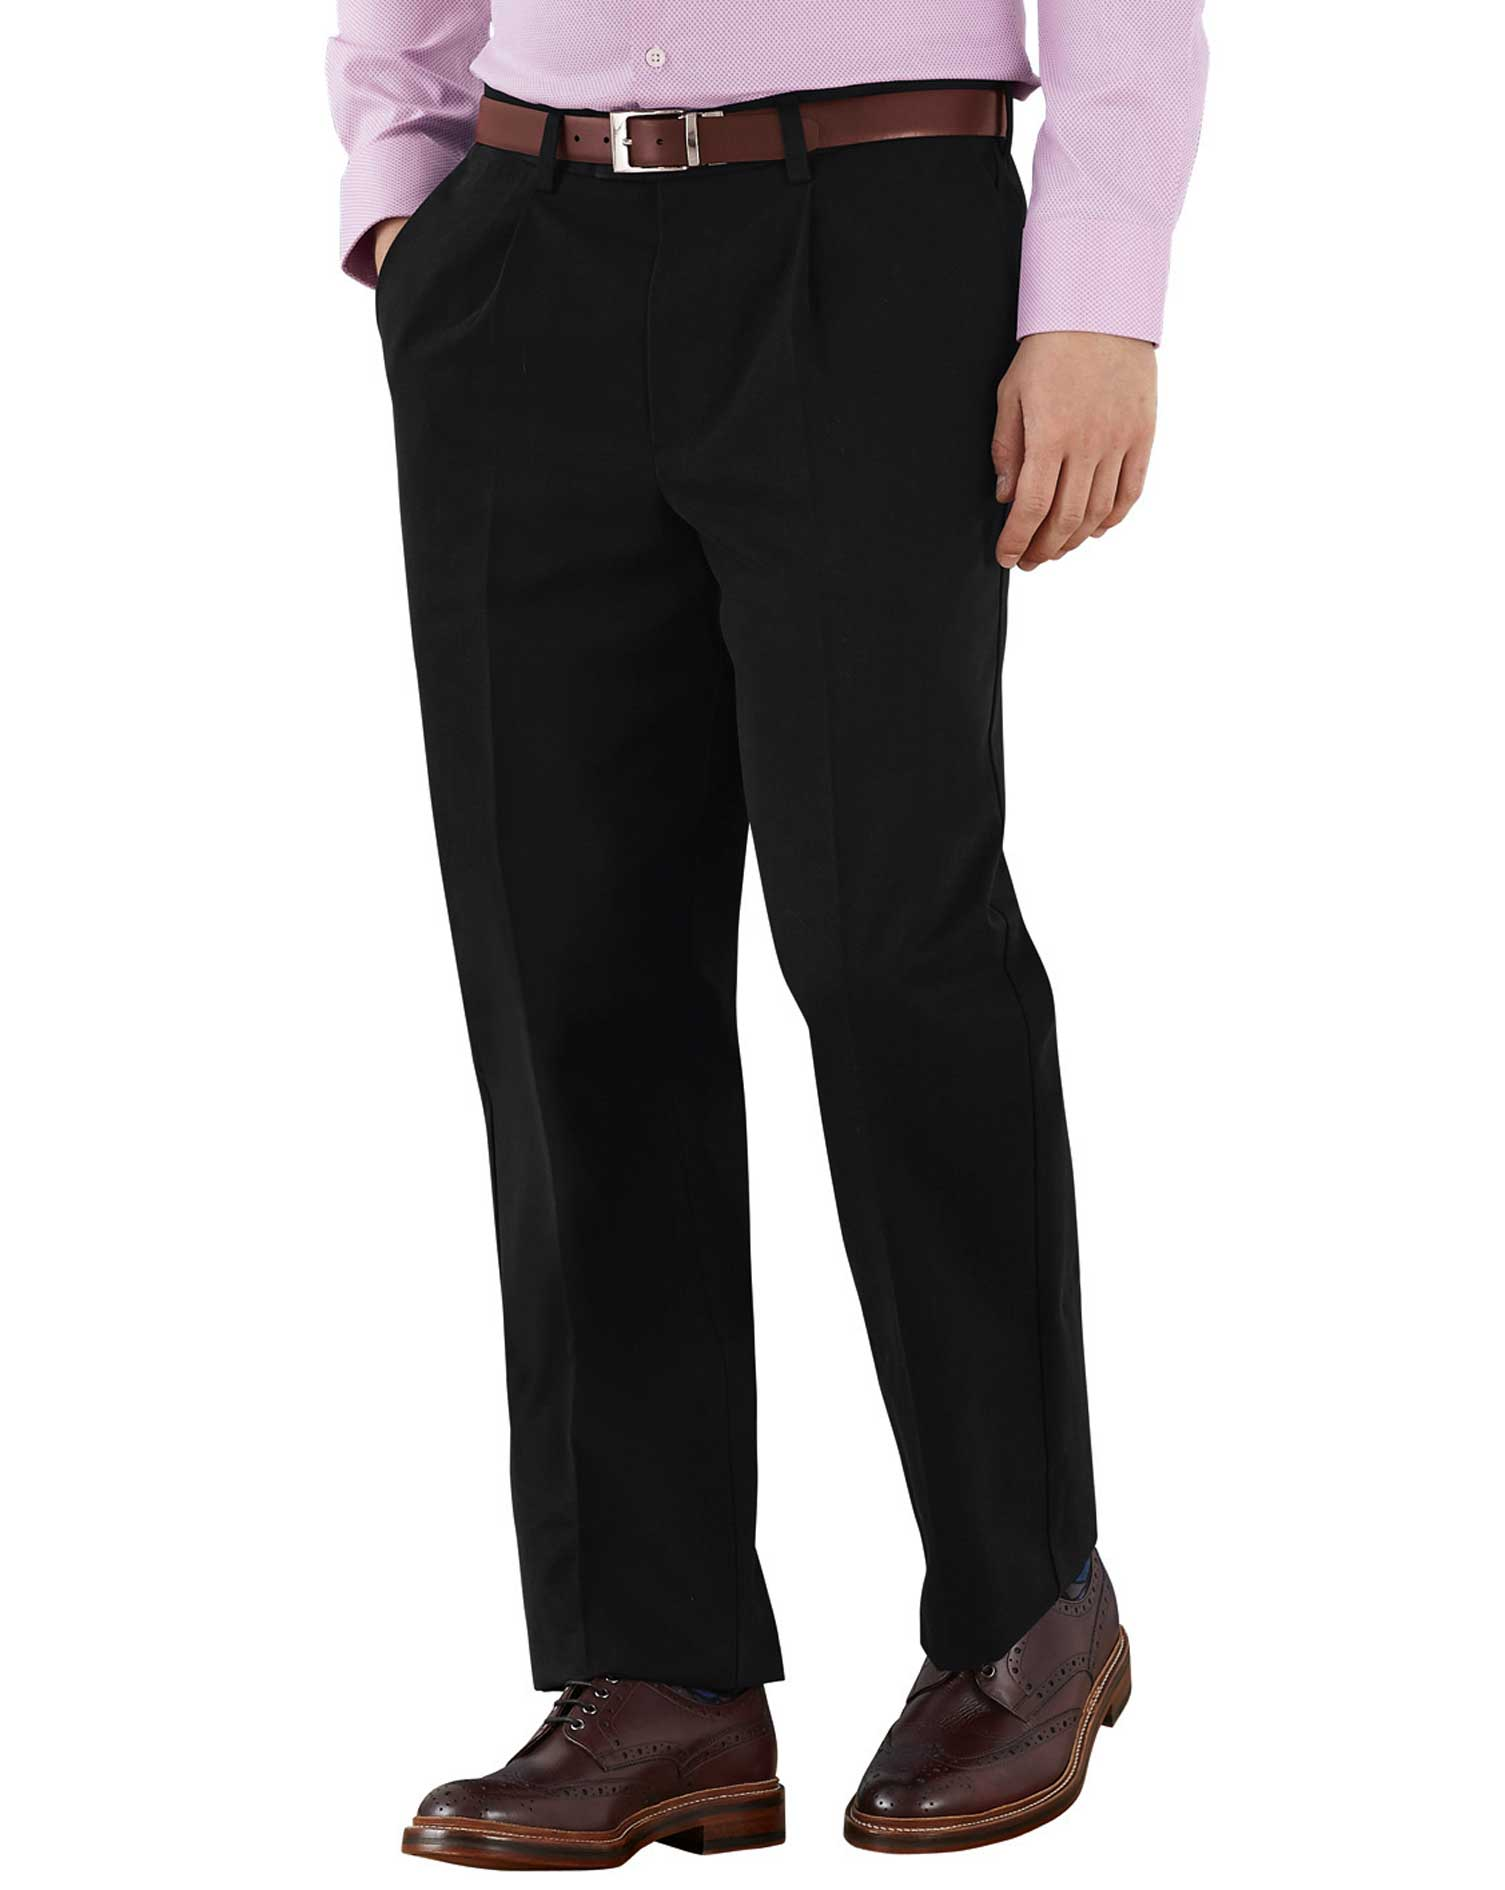 Black Classic Fit Single Pleat Non-Iron Cotton Chino Trousers Size W38 L34 by Charles Tyrwhitt